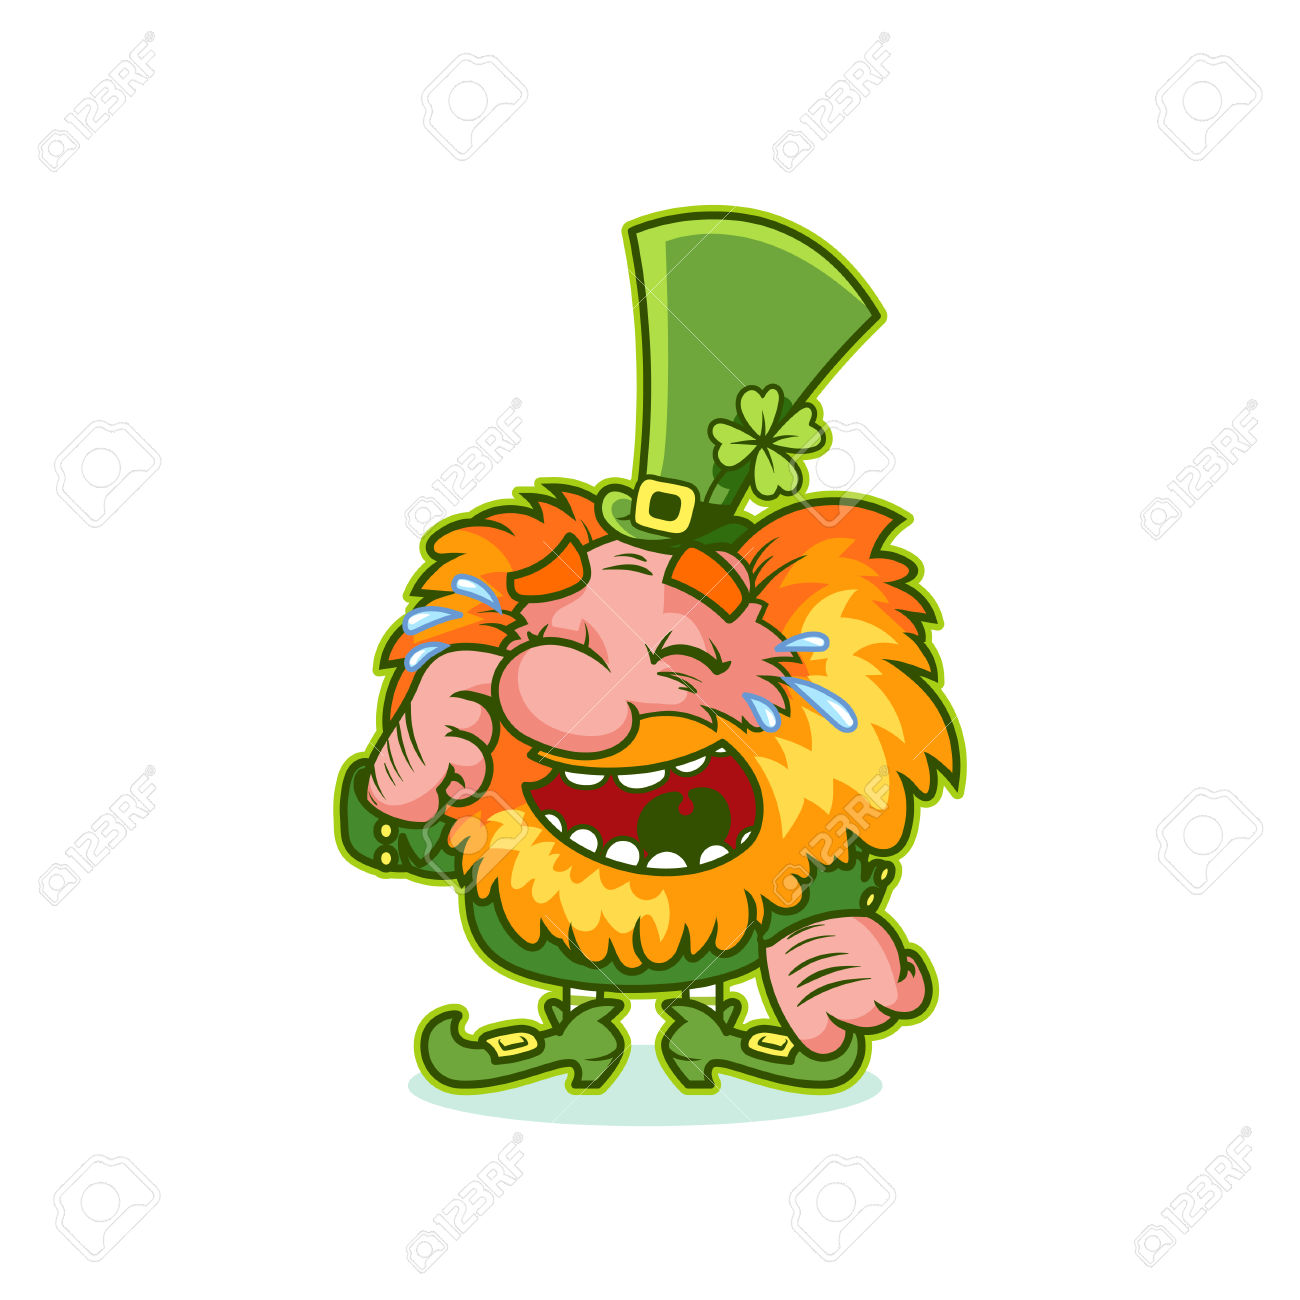 Laughing character clipart clip art royalty free Laughing Leprechaun In Green Costume. Funny Cartoon Character ... clip art royalty free